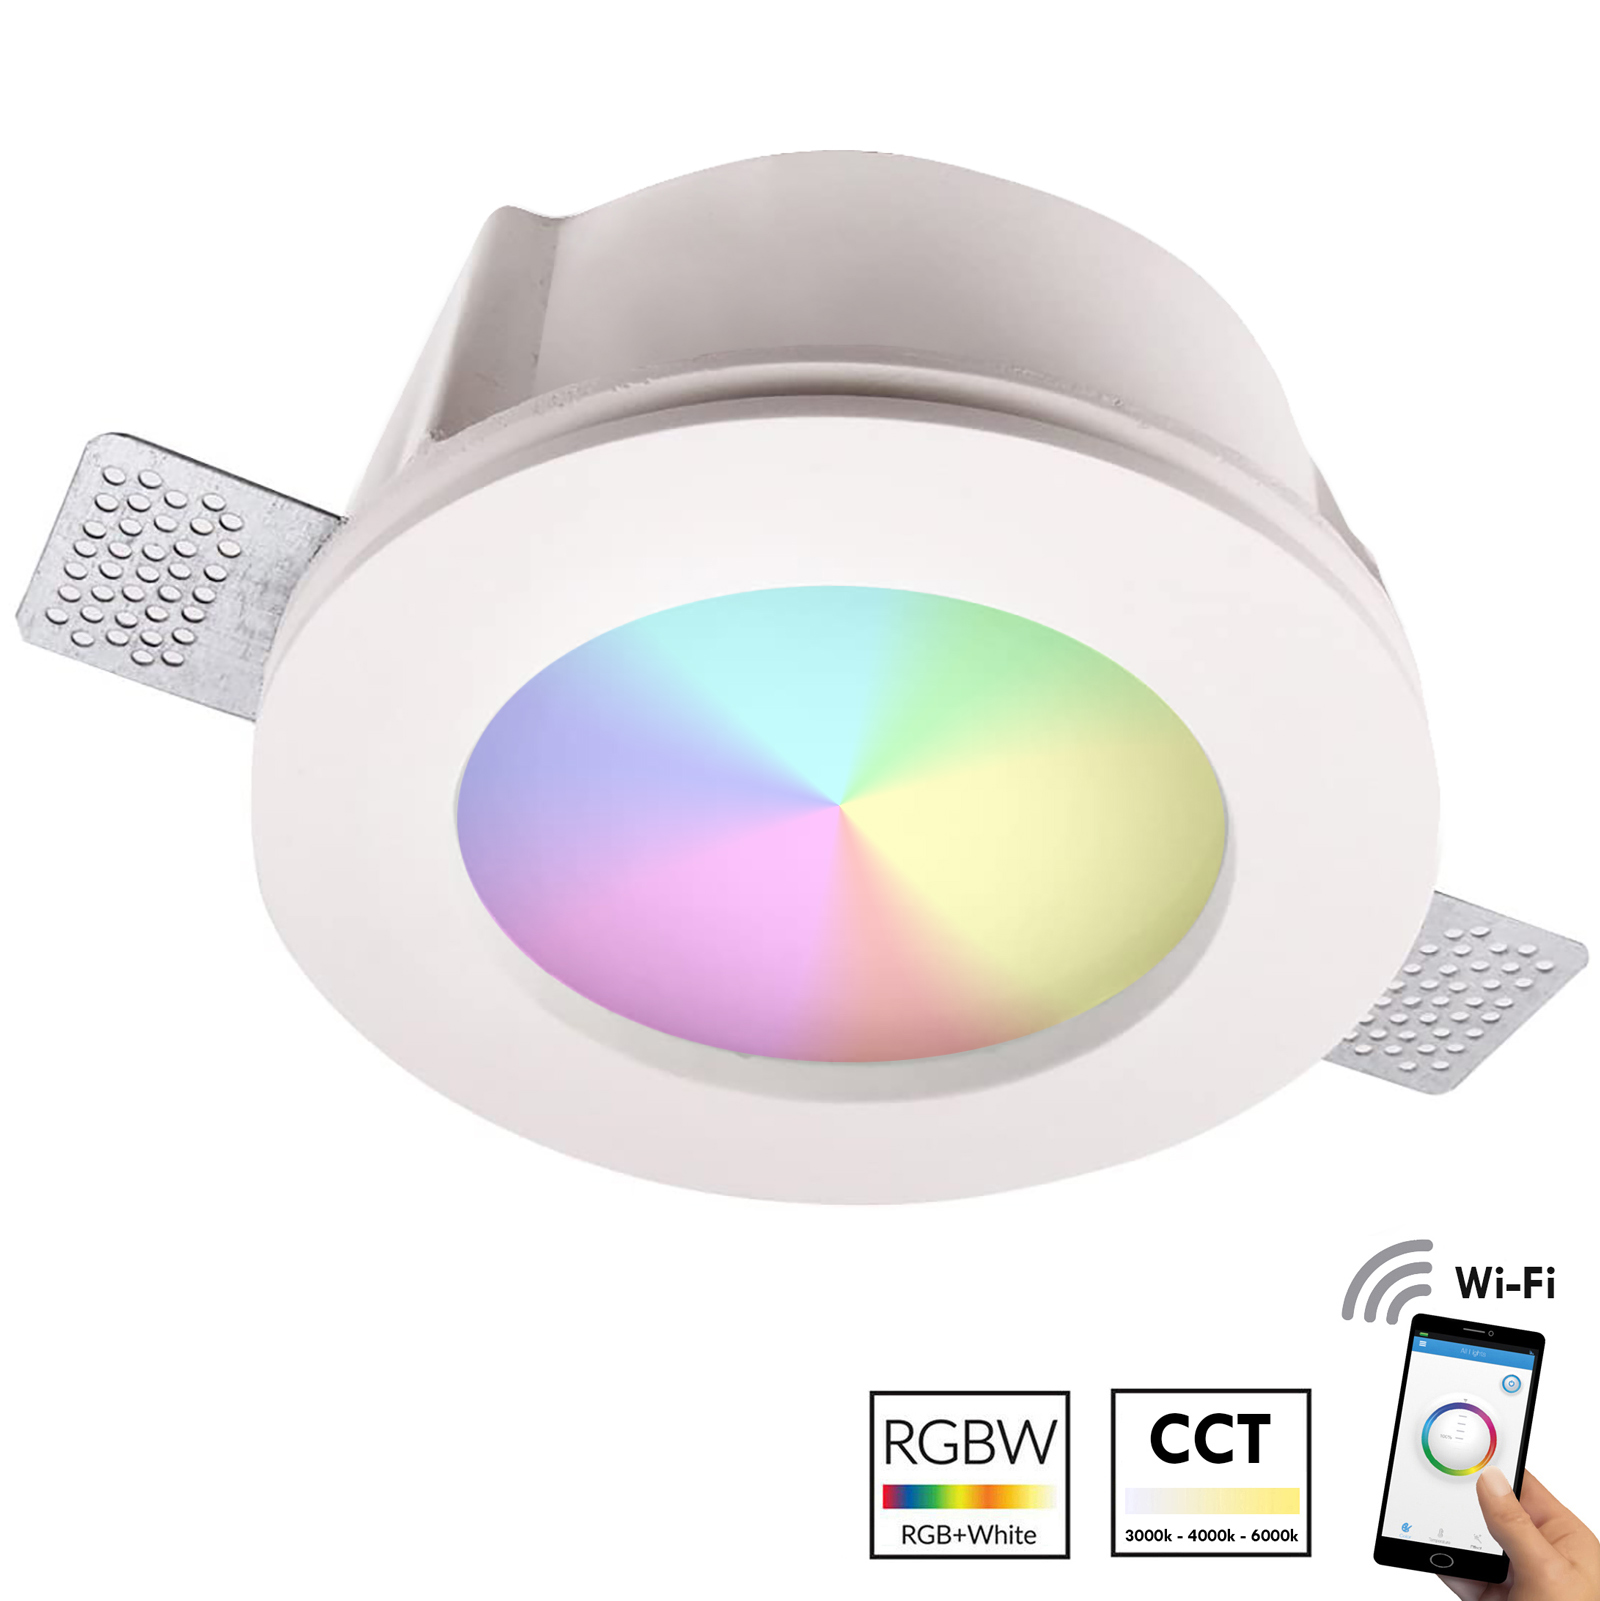 Spotlight plaster recessed round 125mm LED multi-color RGB bulb WiFi light ceiling